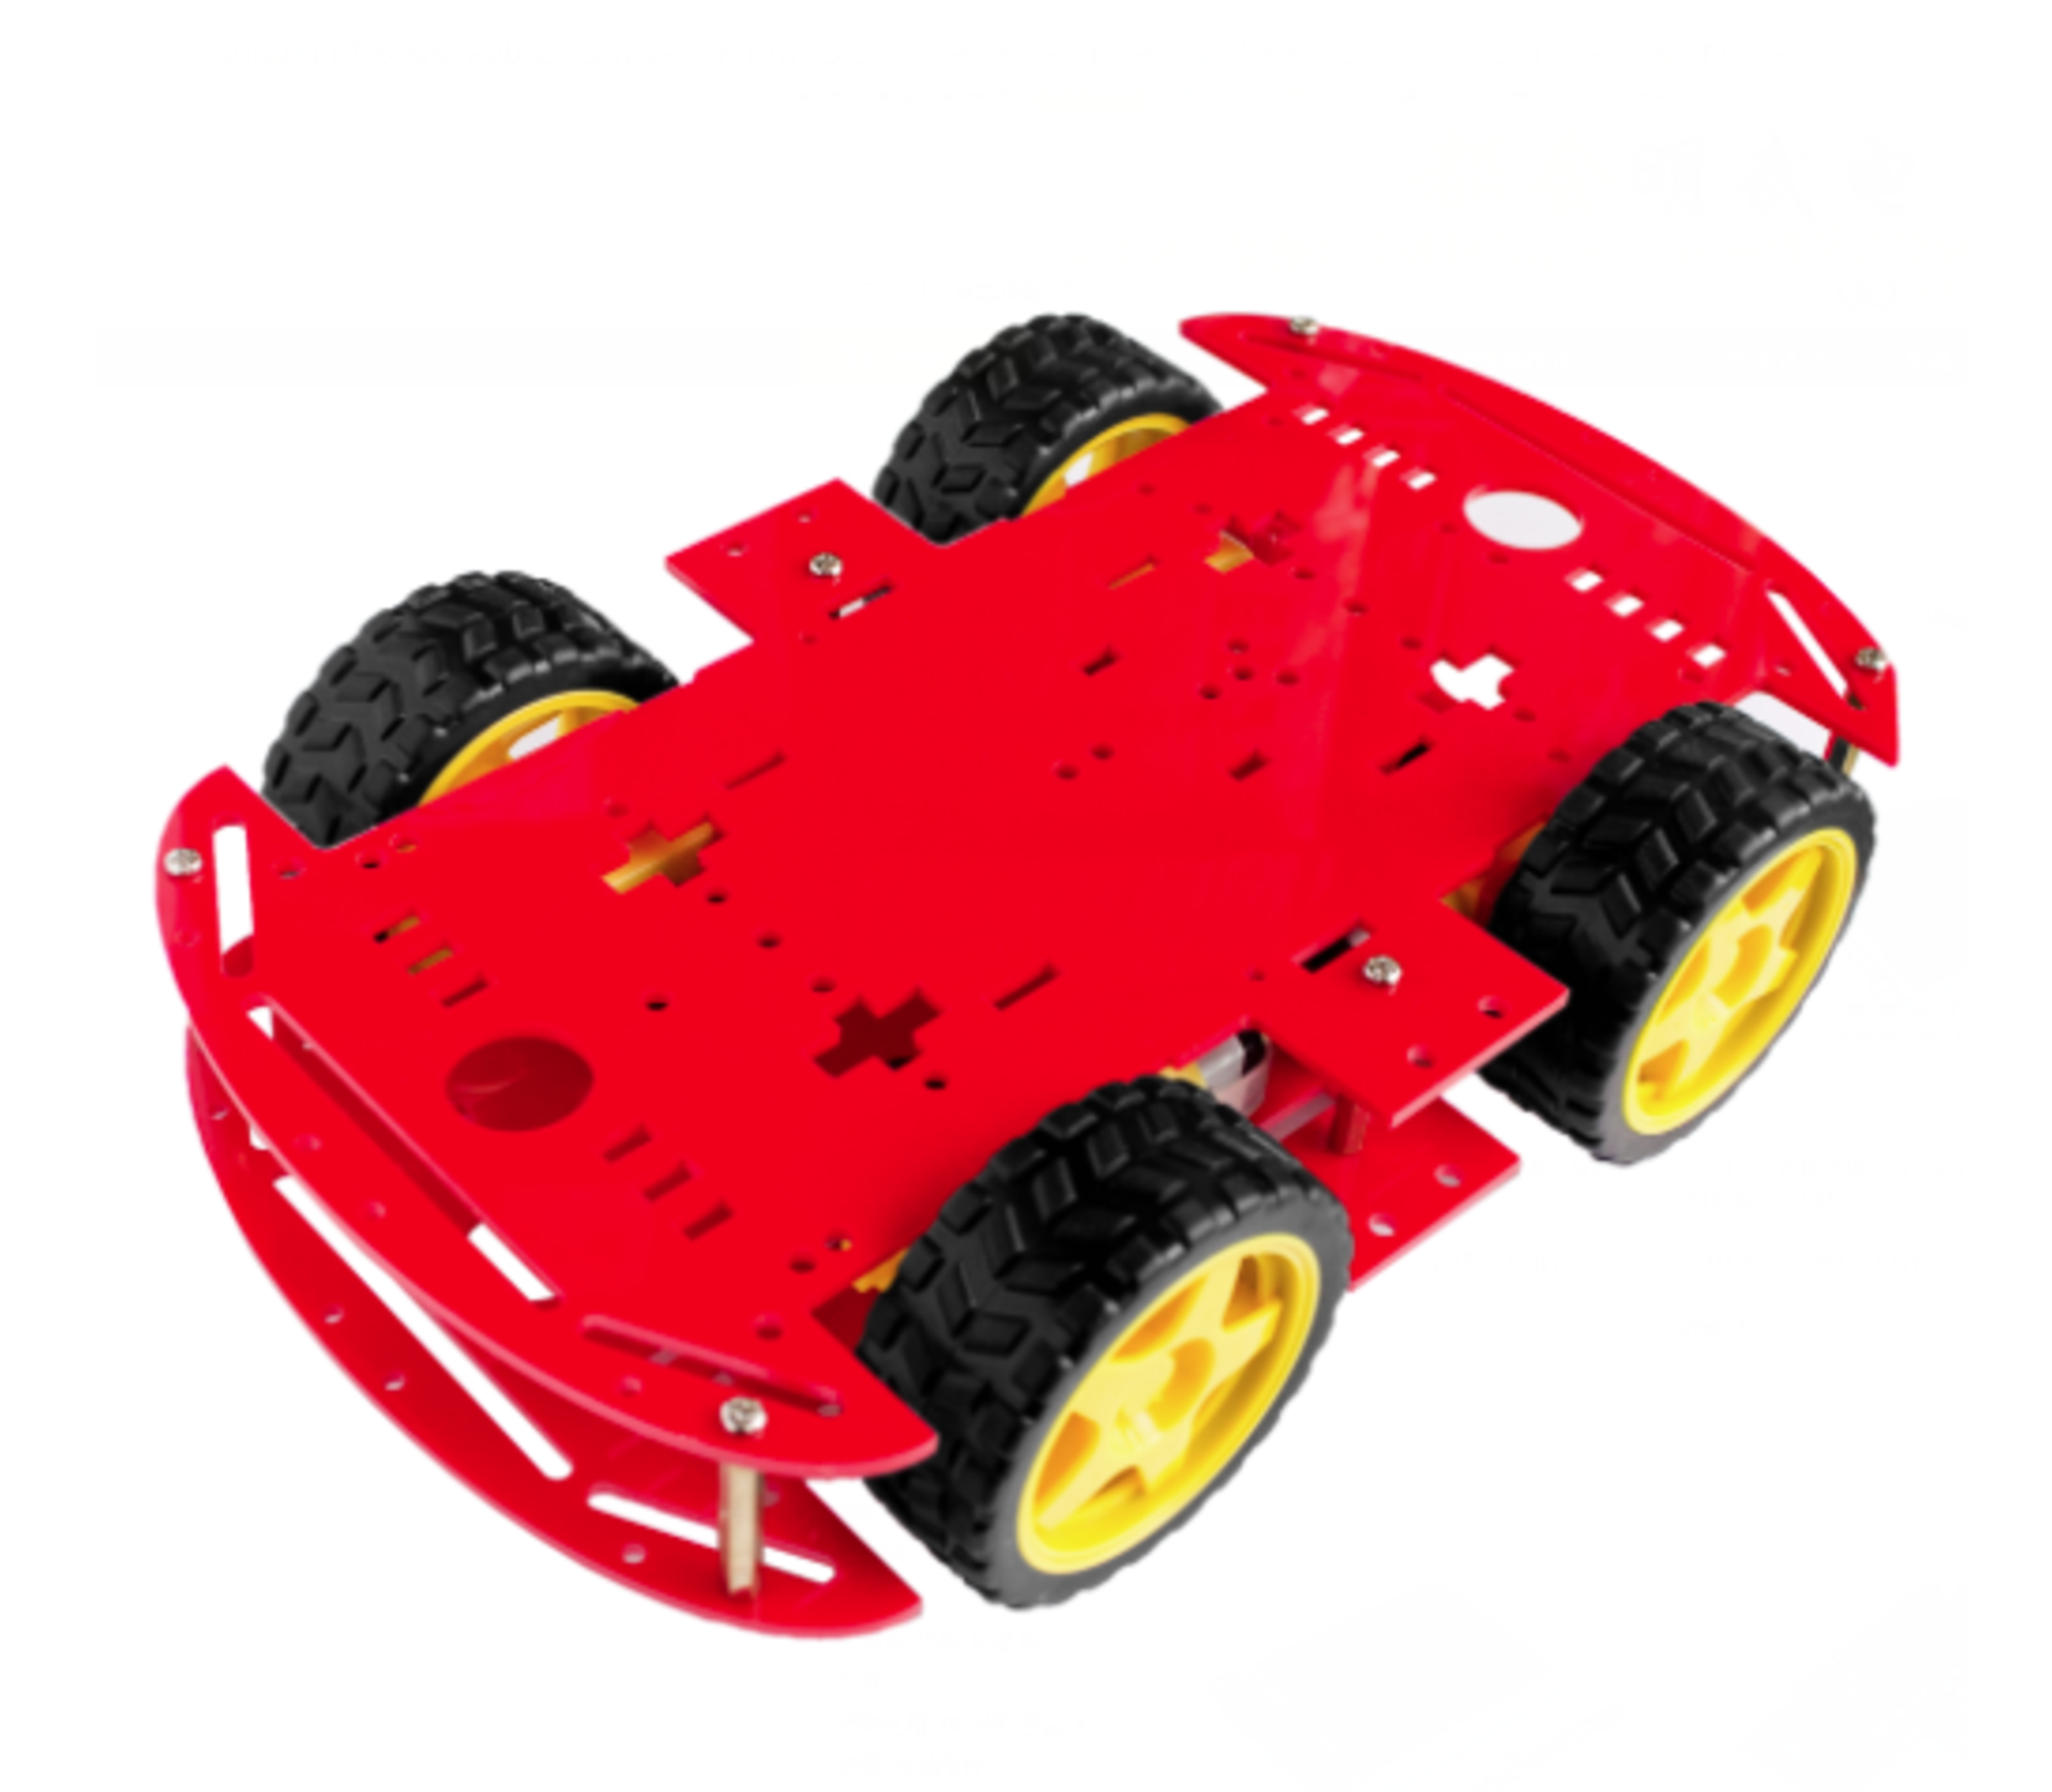 Robot auto chassis platform 4wd rood